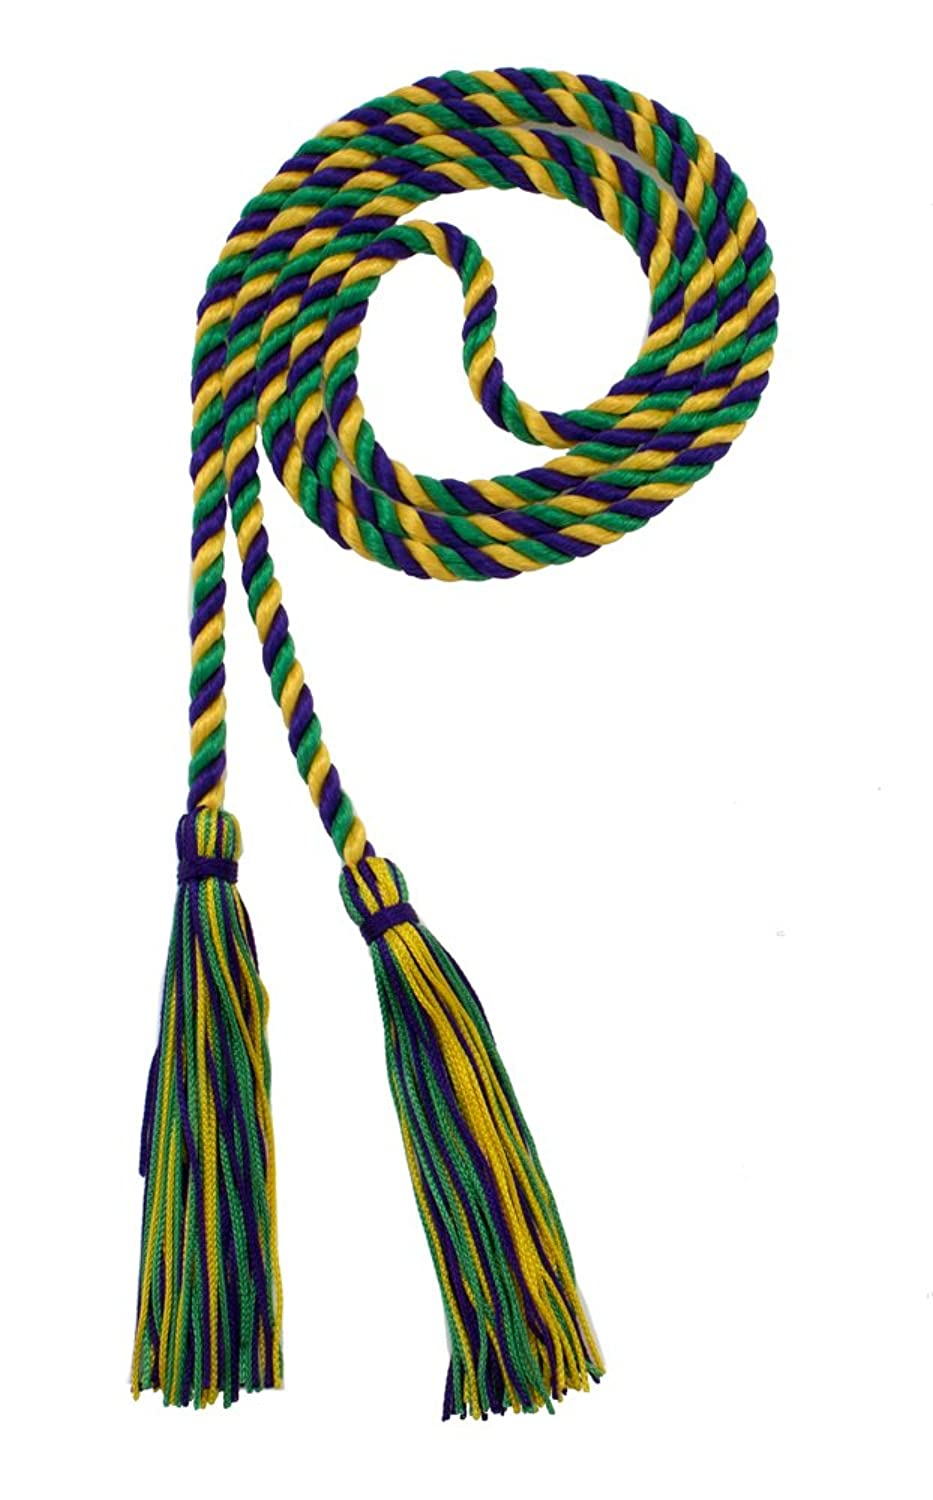 HONOR CORD PURPLE / KELLY / GOLD - TASSEL DEPOT BRAND - MADE IN USA